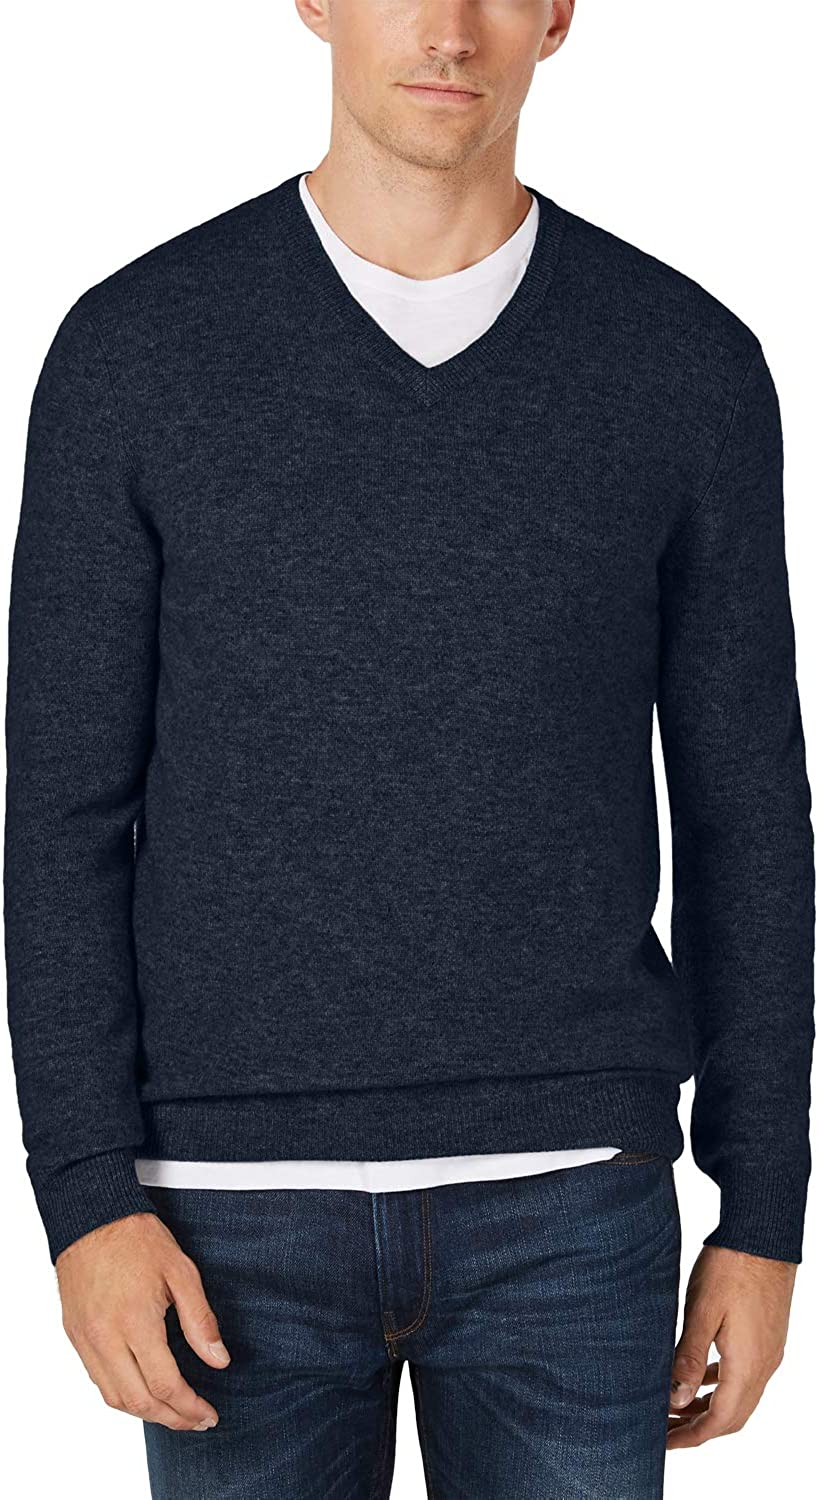 Club Room Mens Super sale period limited Cashmere Sweater V-Neck Ribbed Trim We OFFer at cheap prices